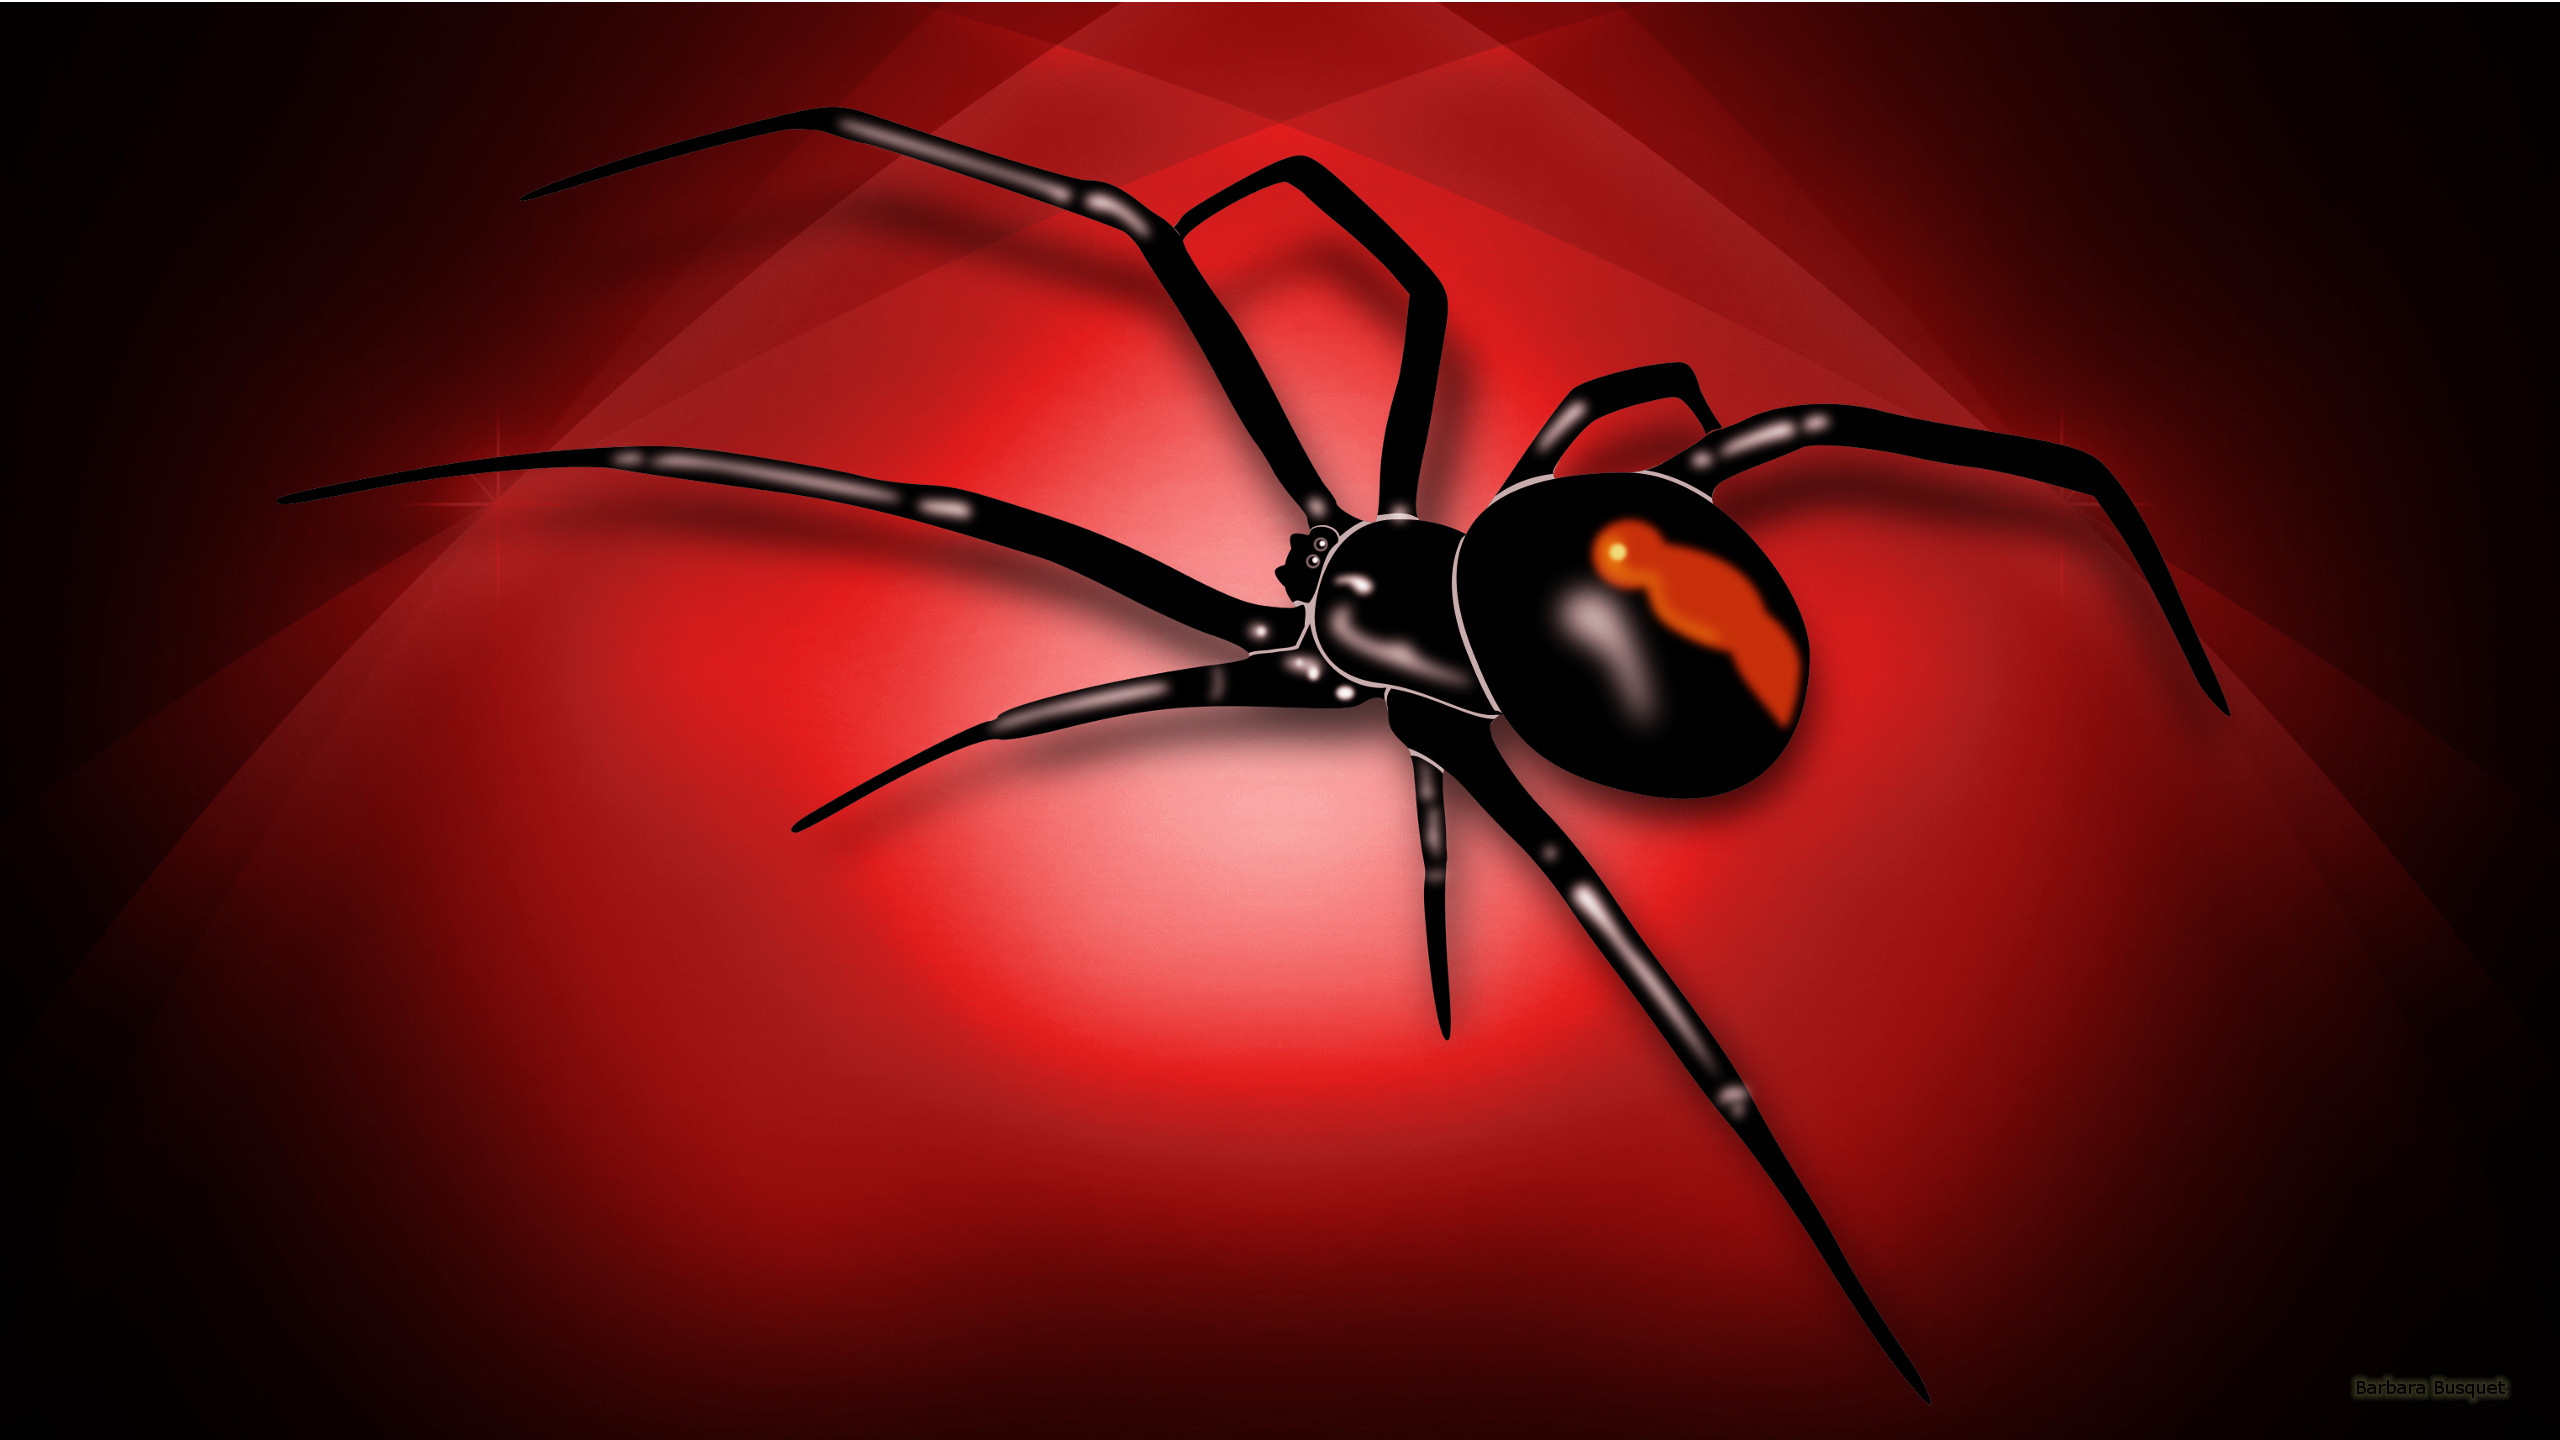 spider and web - barbaras hd wallpapers